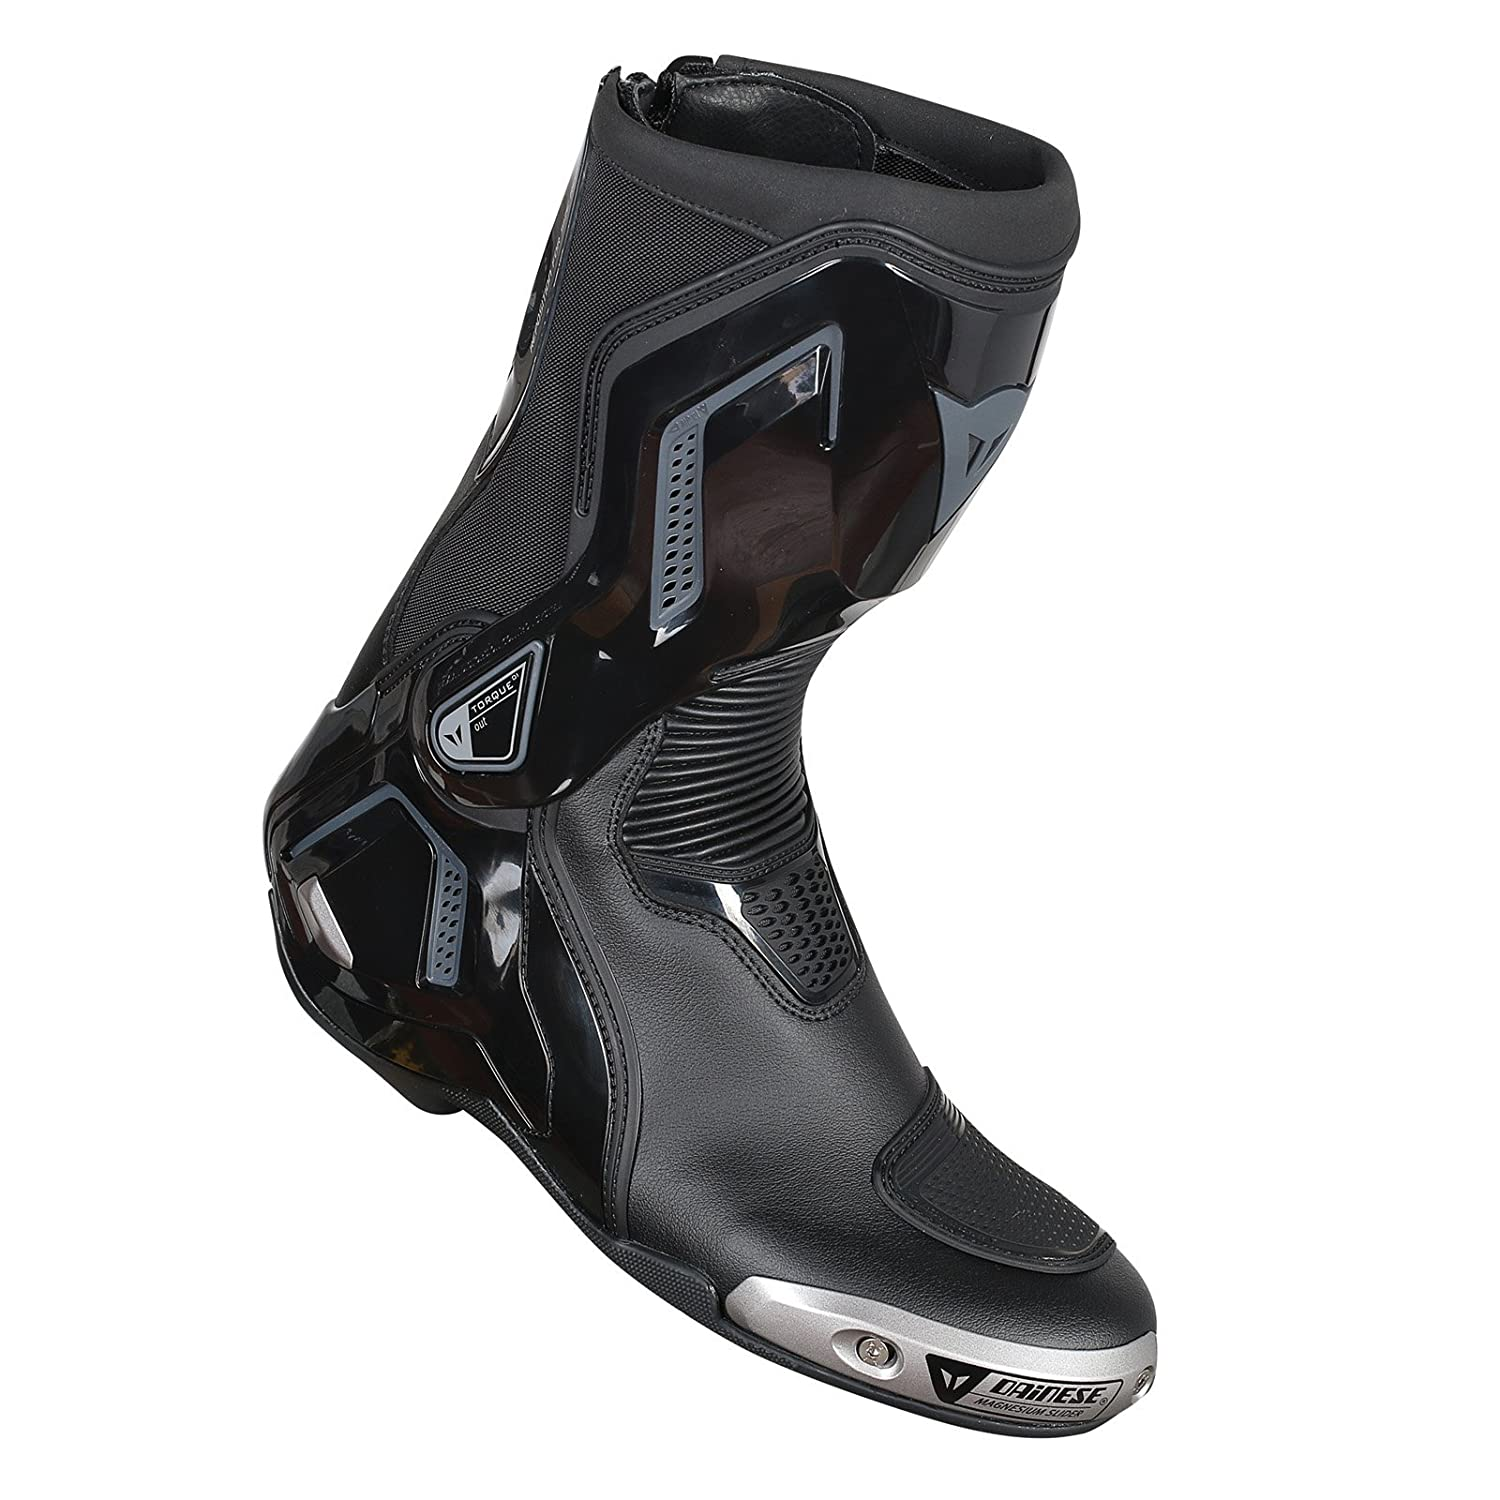 Dainese Torque D1 Out Boots (43) (BLACK/FLUORESCENT RED)